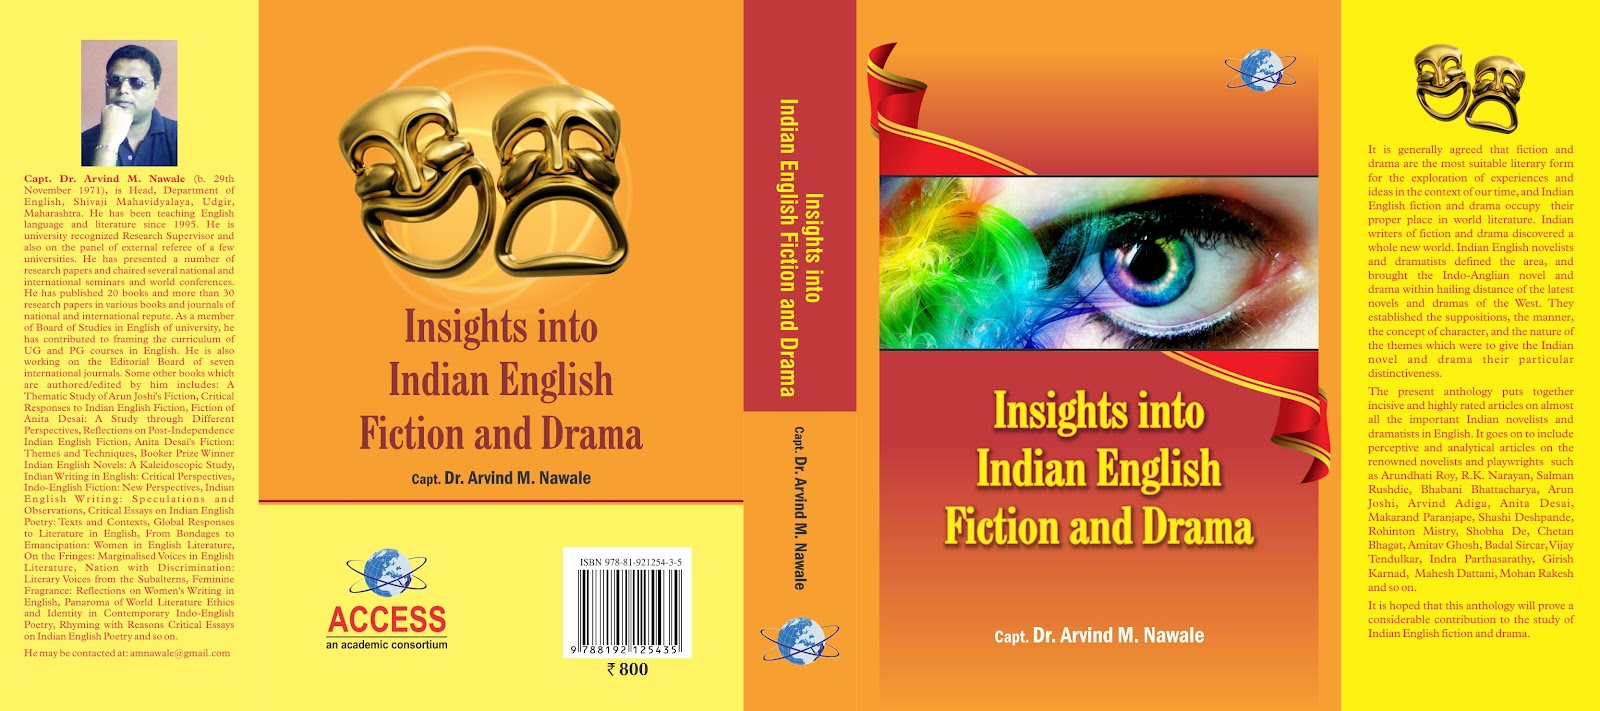 indian english drama Ebook indian english drama download rating 3 and suggested read by user 249 online last modified september 15, 2018, 4:28 am find as text or pdf and doc document for indian english drama.